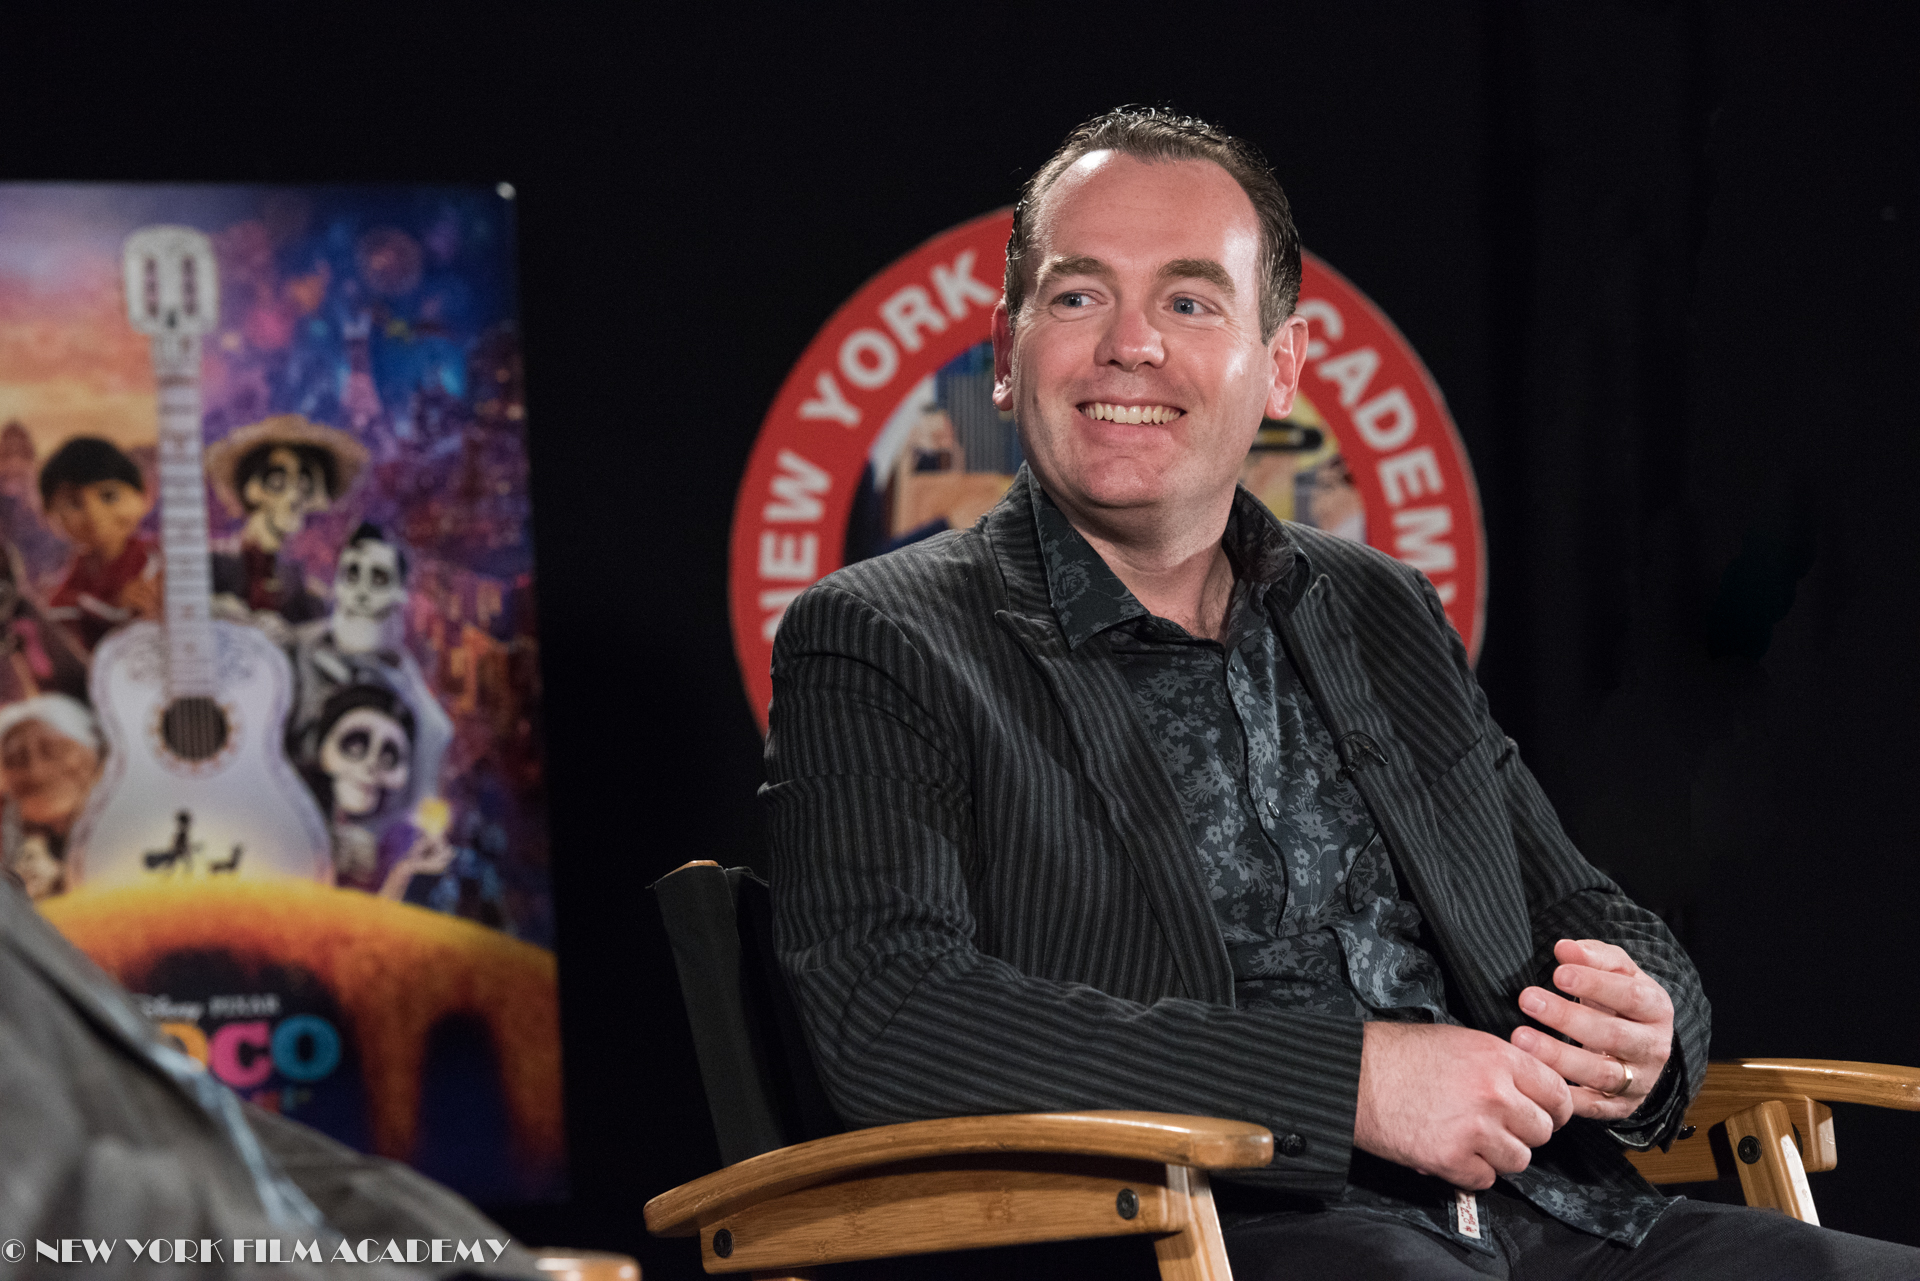 Byron Bashforth answers questions about Disney's Coco at NYFA LA